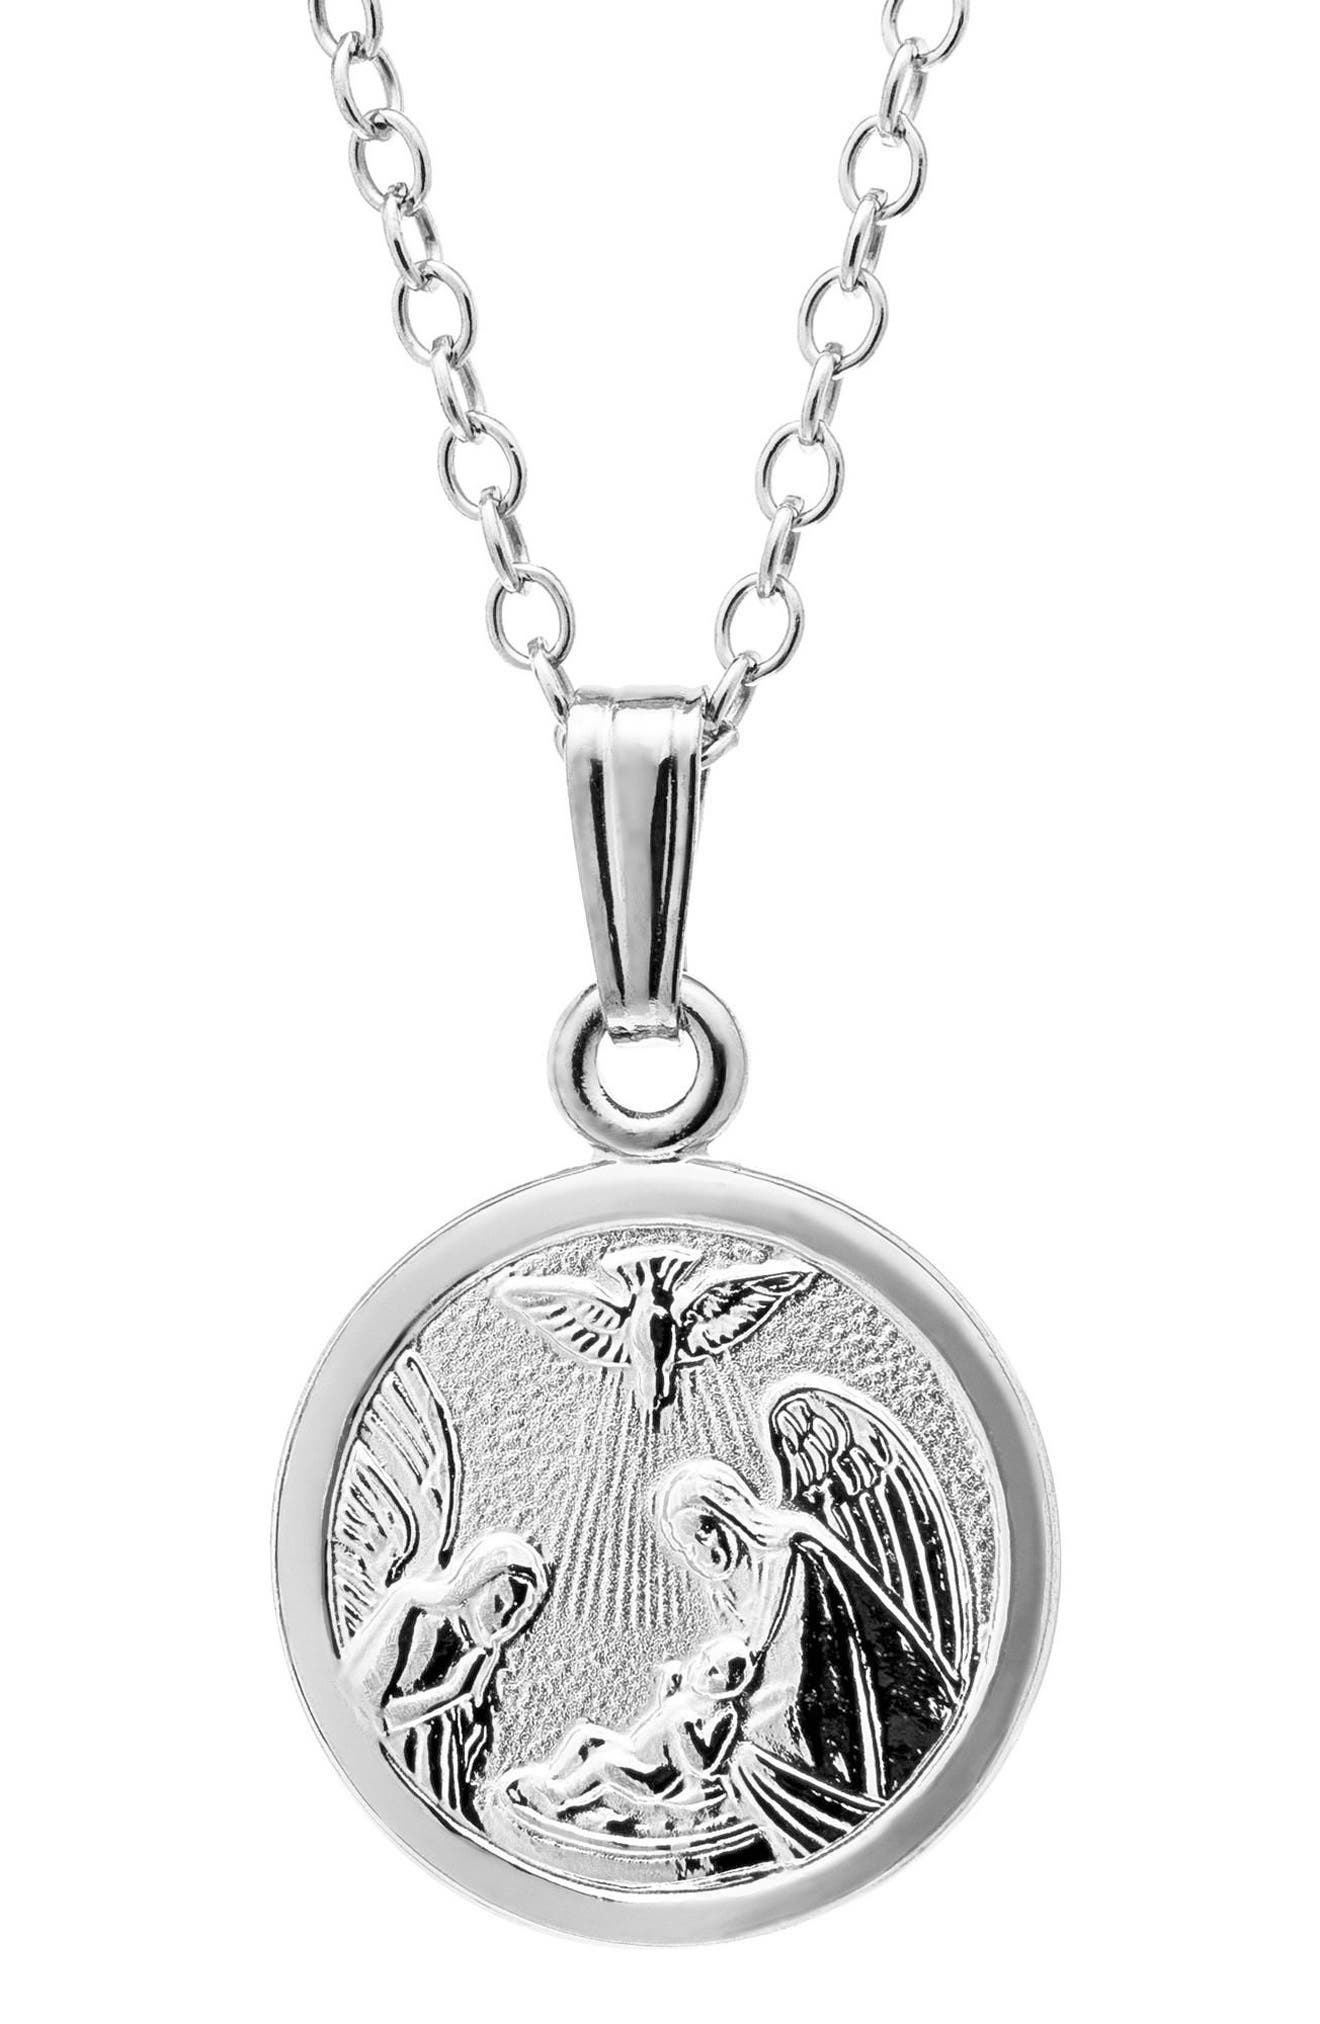 Sterling Silver Guardian Angel Pendant Necklace,                         Main,                         color, Silver